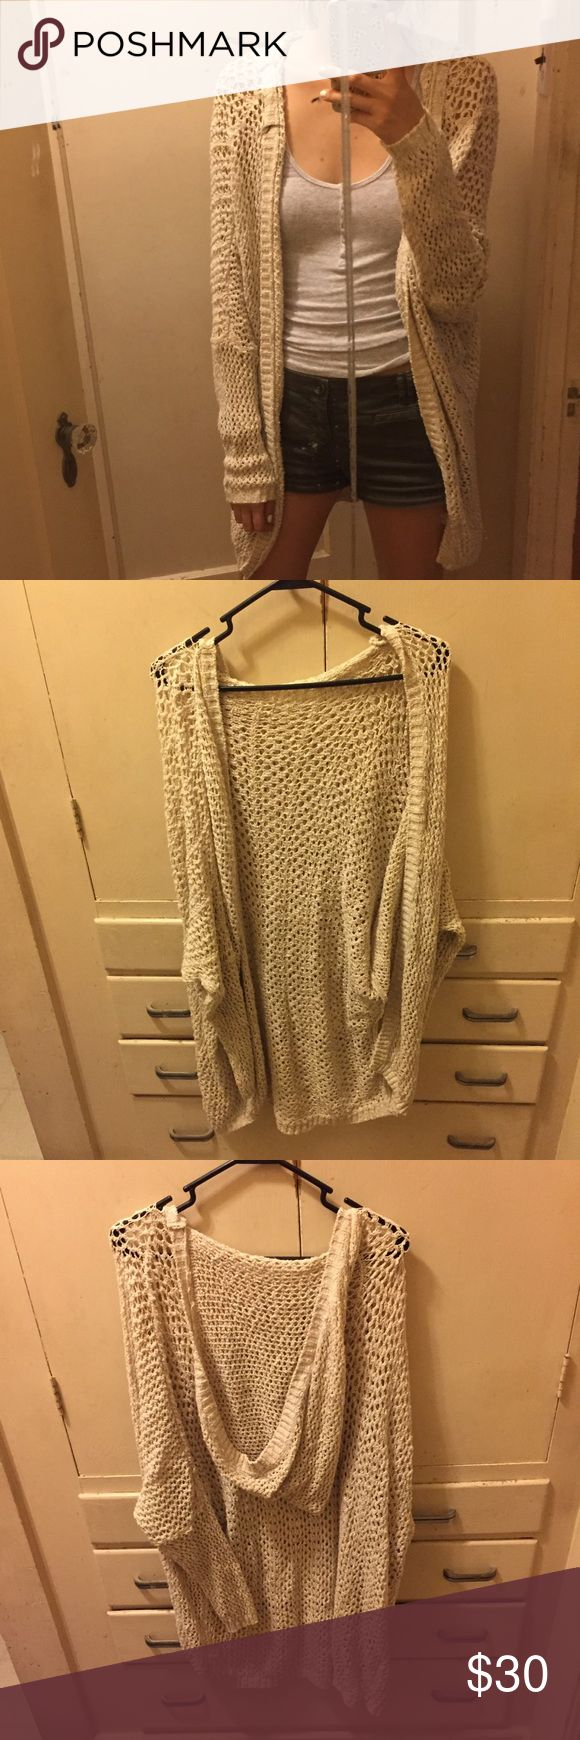 """Brandy Melville Cardigan Long crochet cotton/polyester cardigan. Worn a couple times. Good condition. Reference: I'm 5'8"""" Brandy Melville Sweaters Cardigans"""